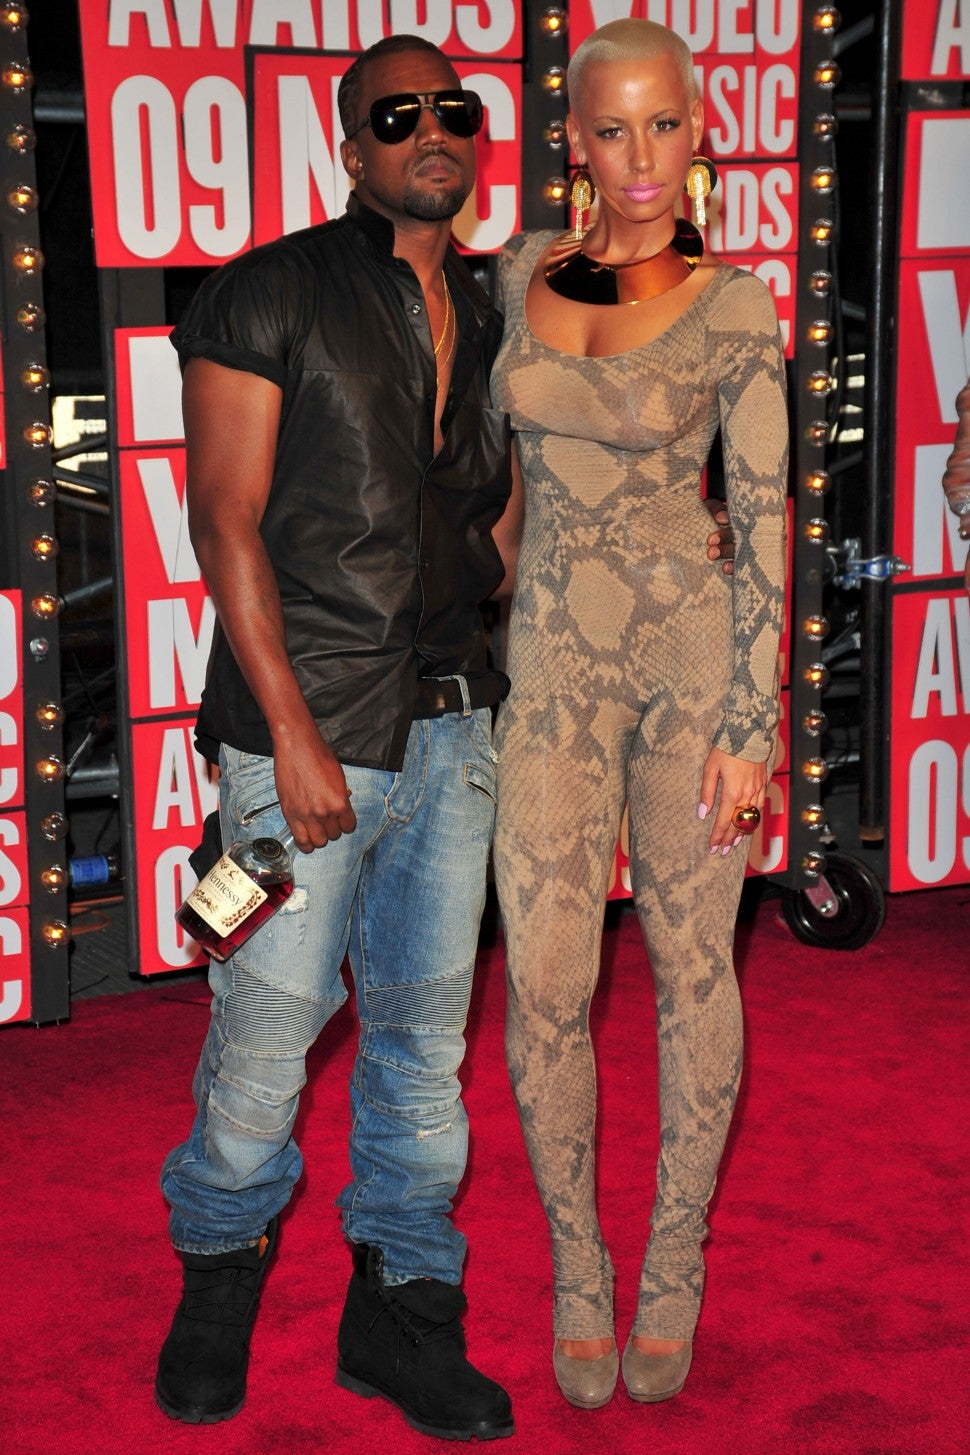 Kanye West and Amber Rose attend 2009 MTV Video Music Awards